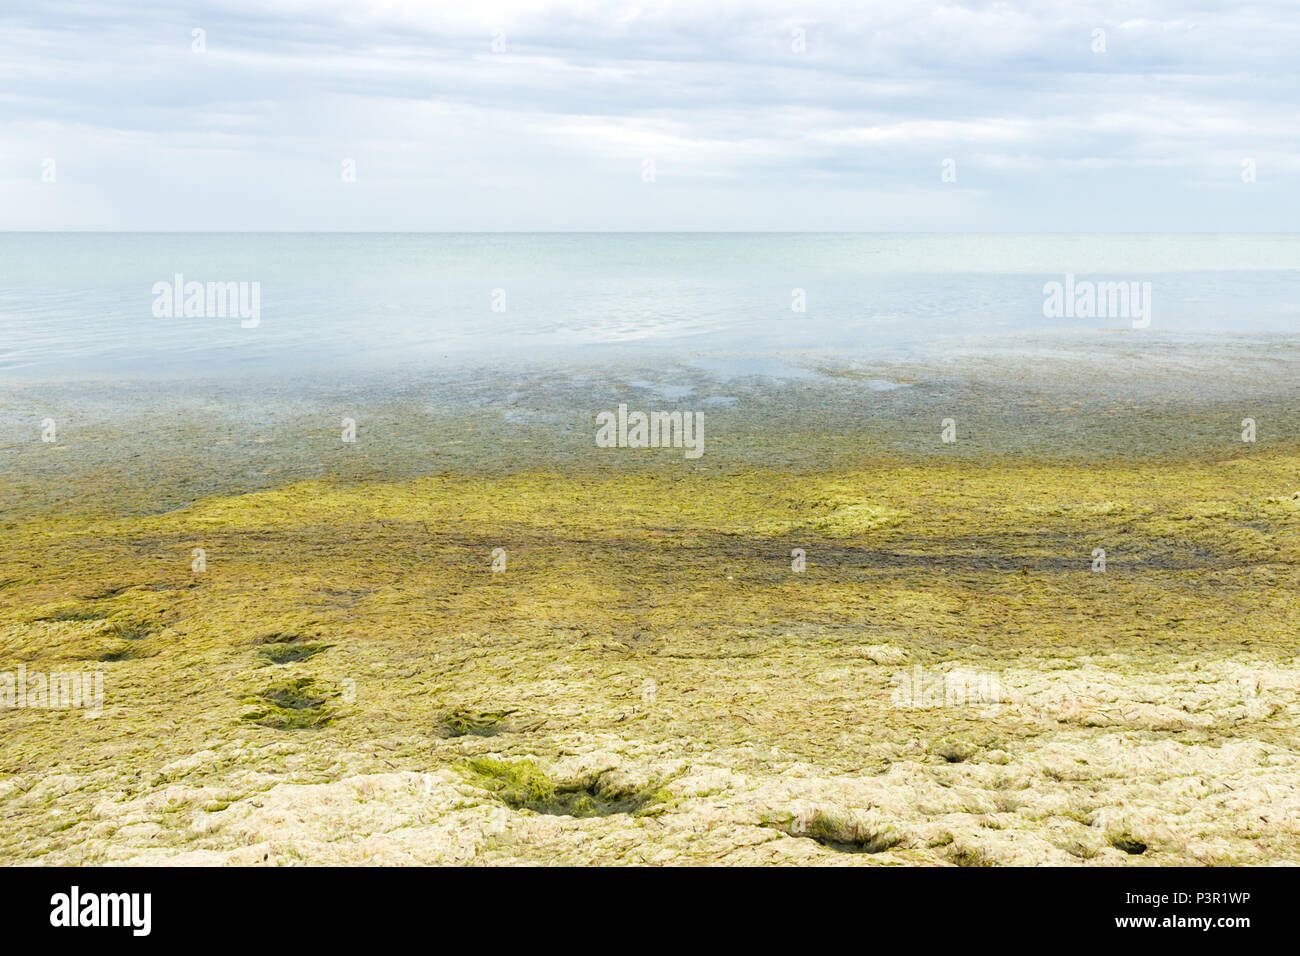 Beach with green seaweeds on the beach. ecology and natural disasters concept. - Stock Image